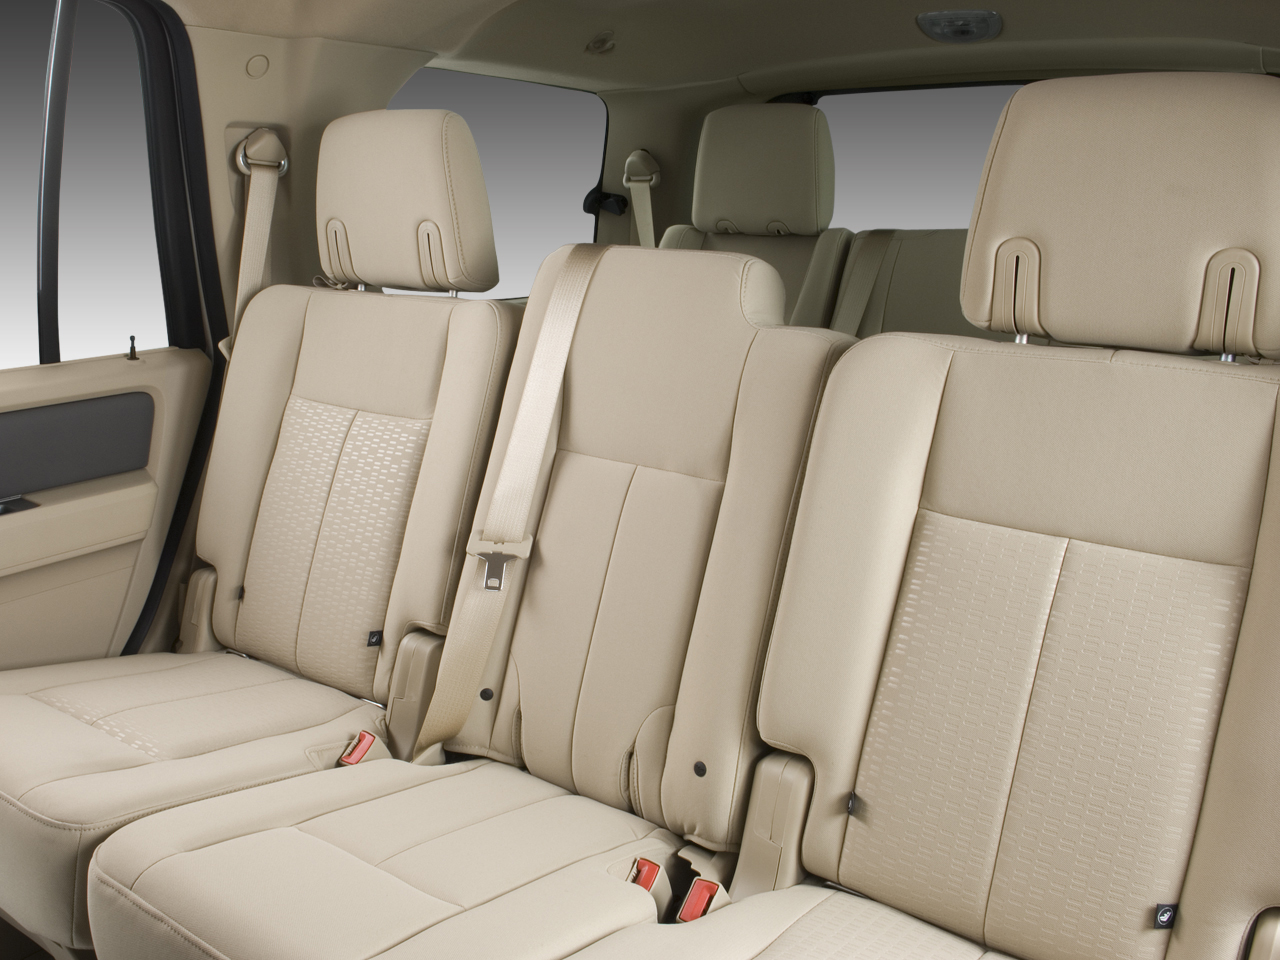 2008 ford expedition seat covers images